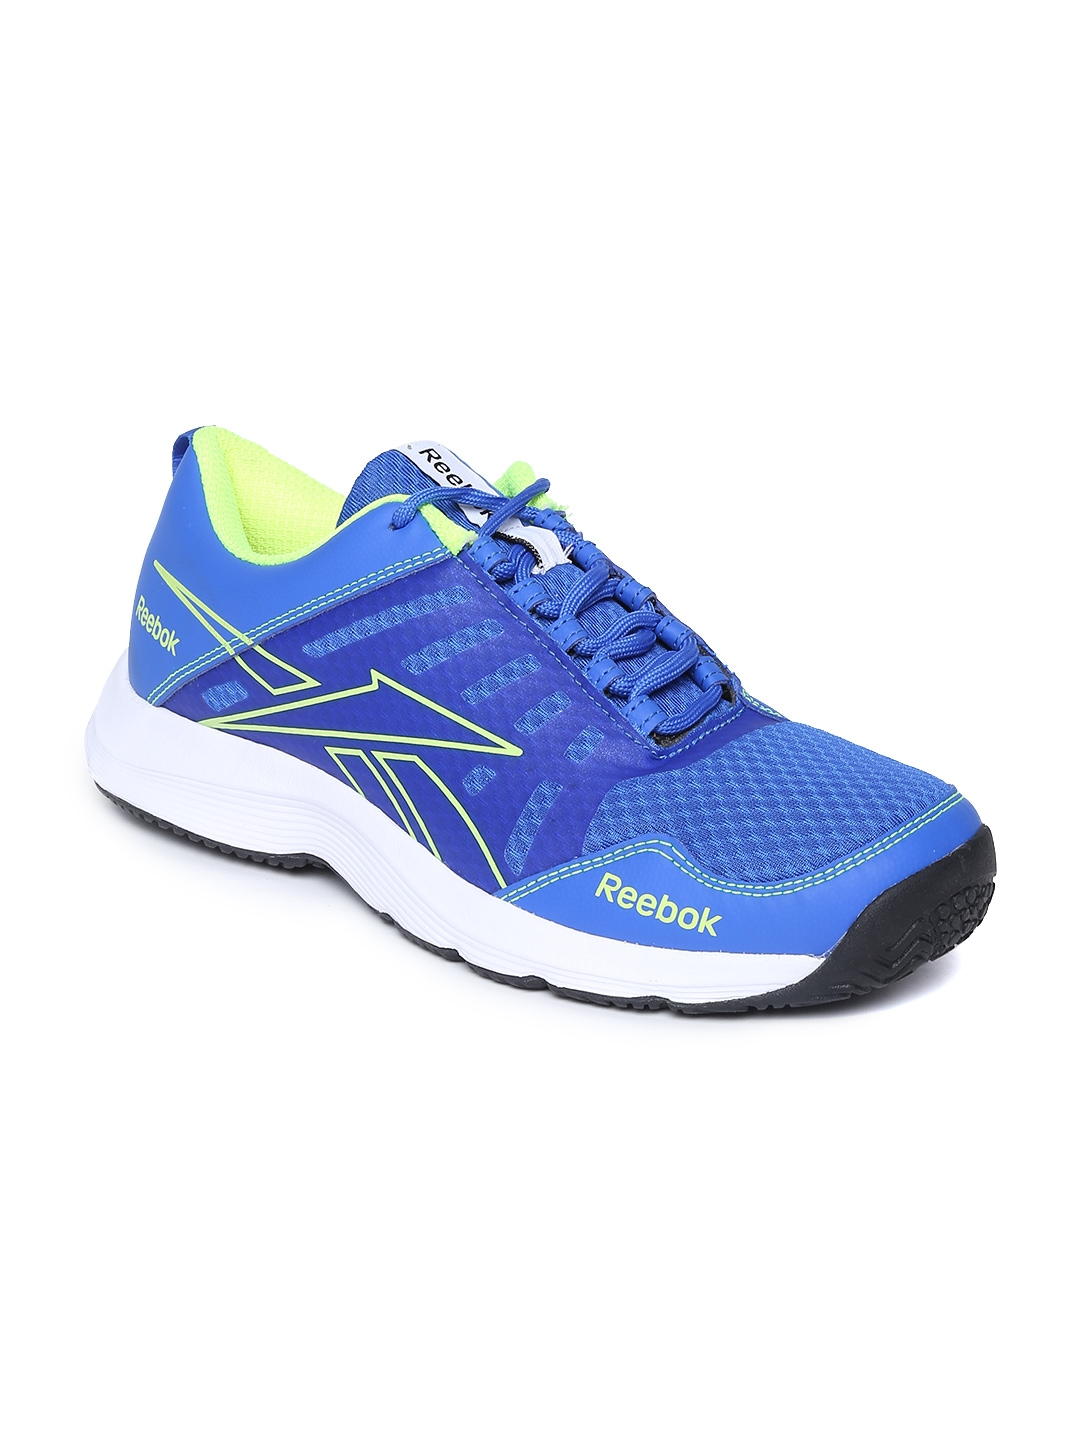 home footwear footwear sports shoes reebok sports shoes